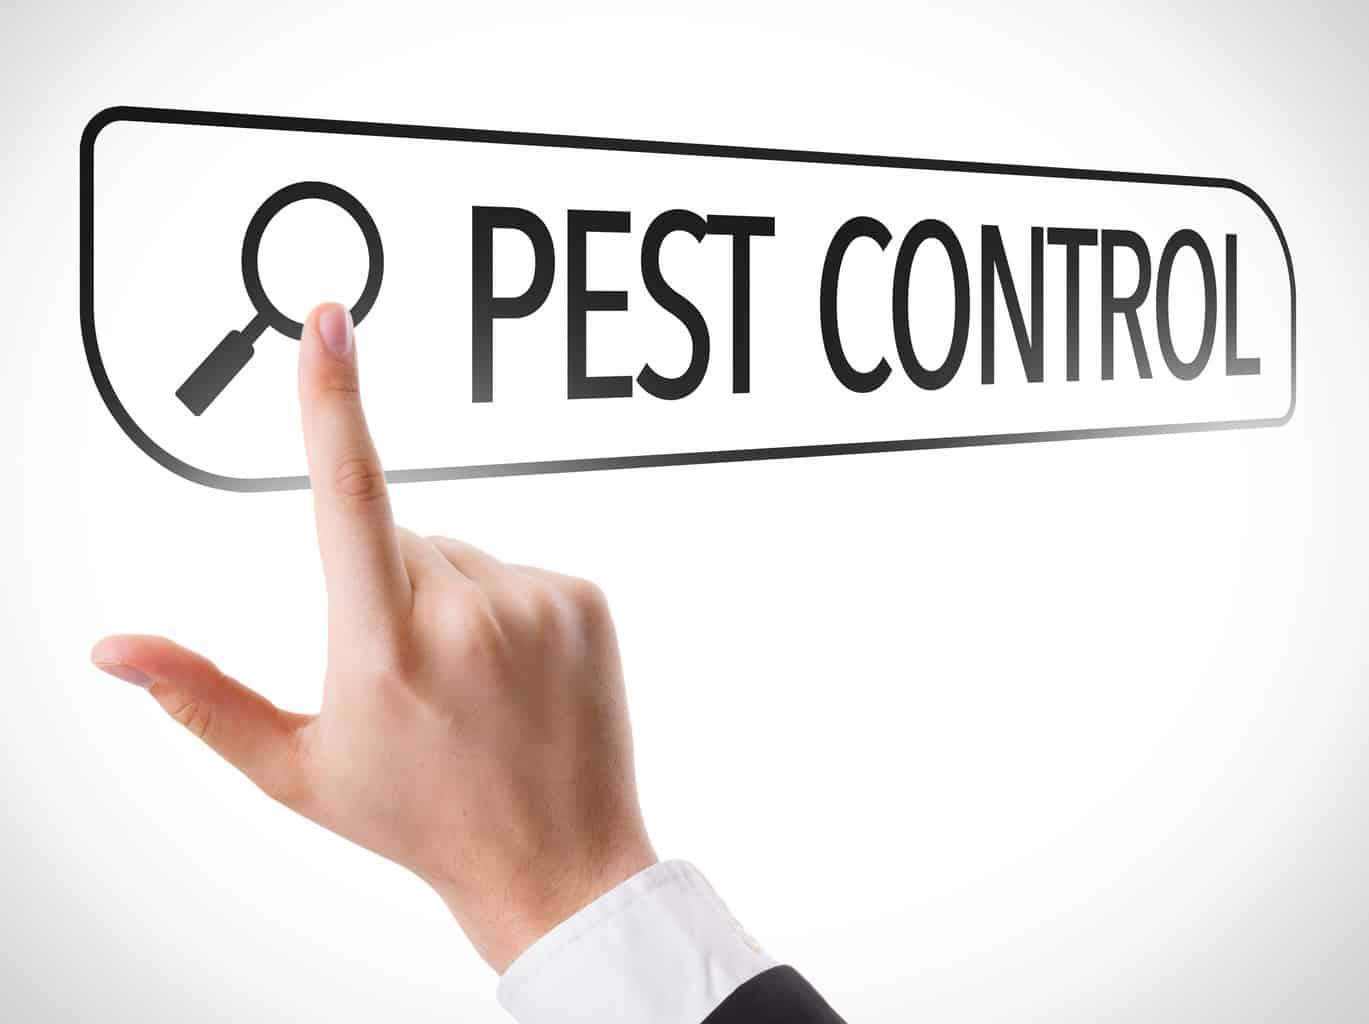 Pest Control written in search bar on virtual screen